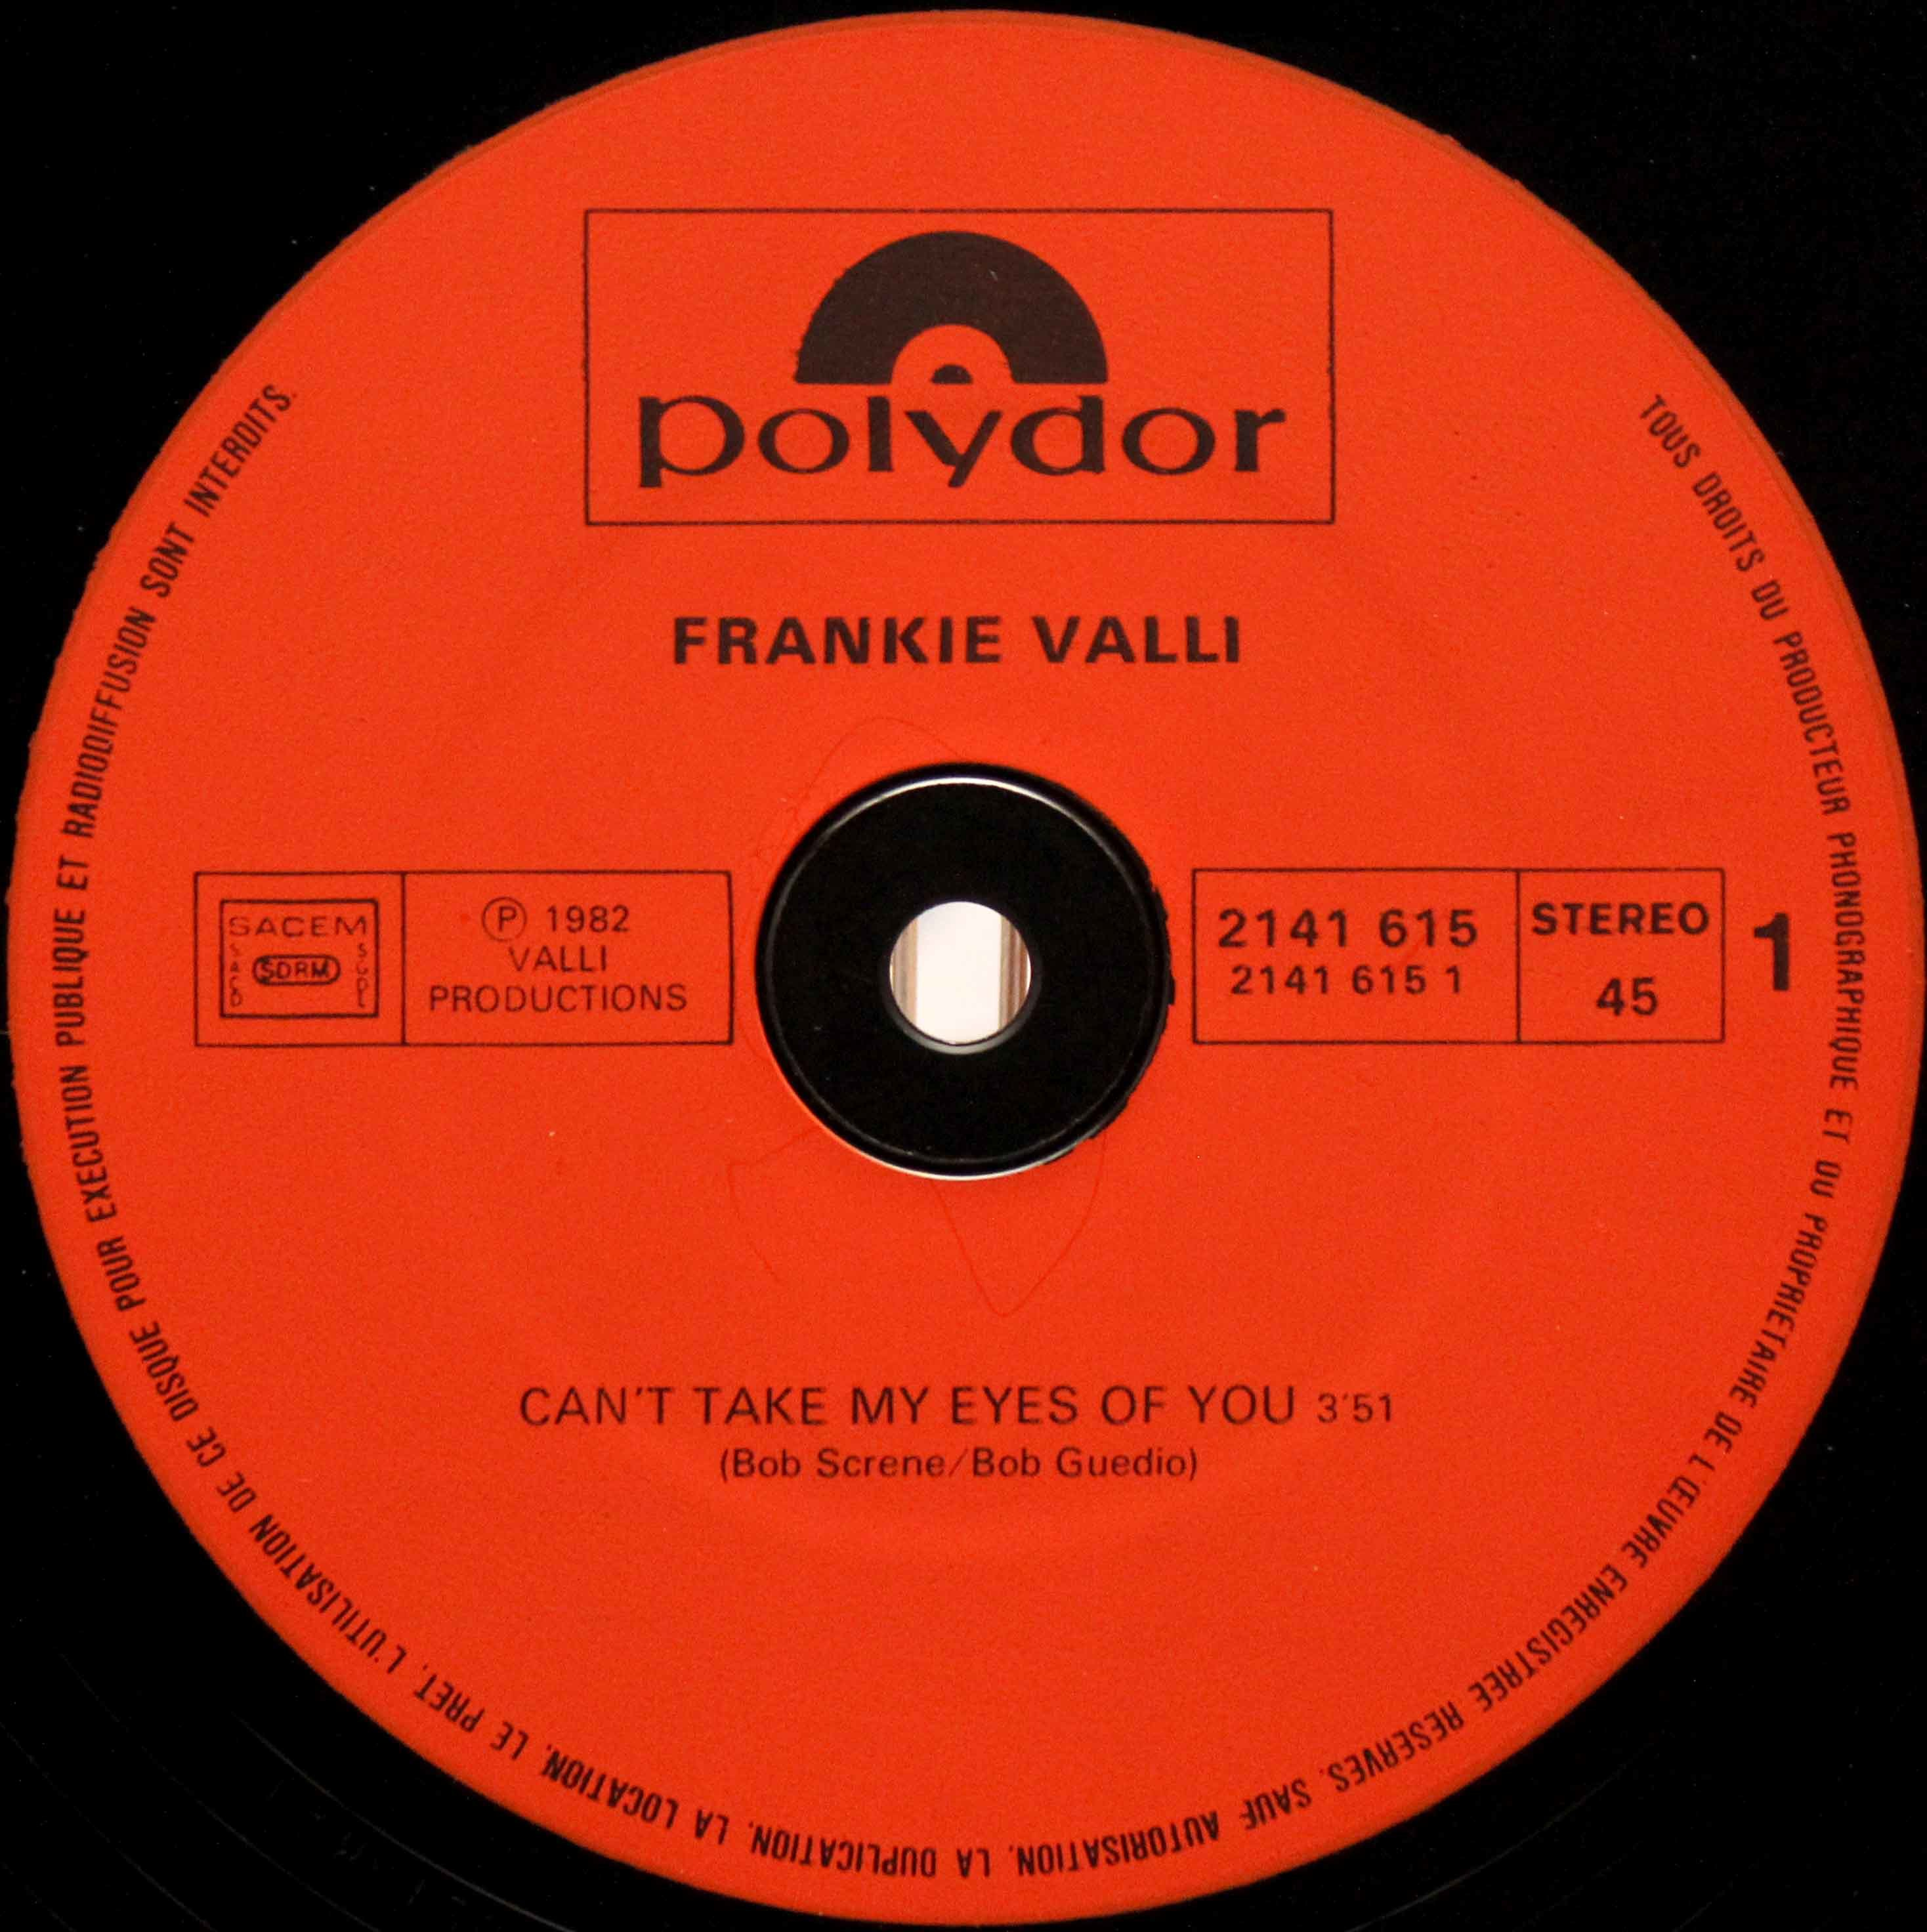 Frankie Valli - Cant Take My Eyes Off You 12 03